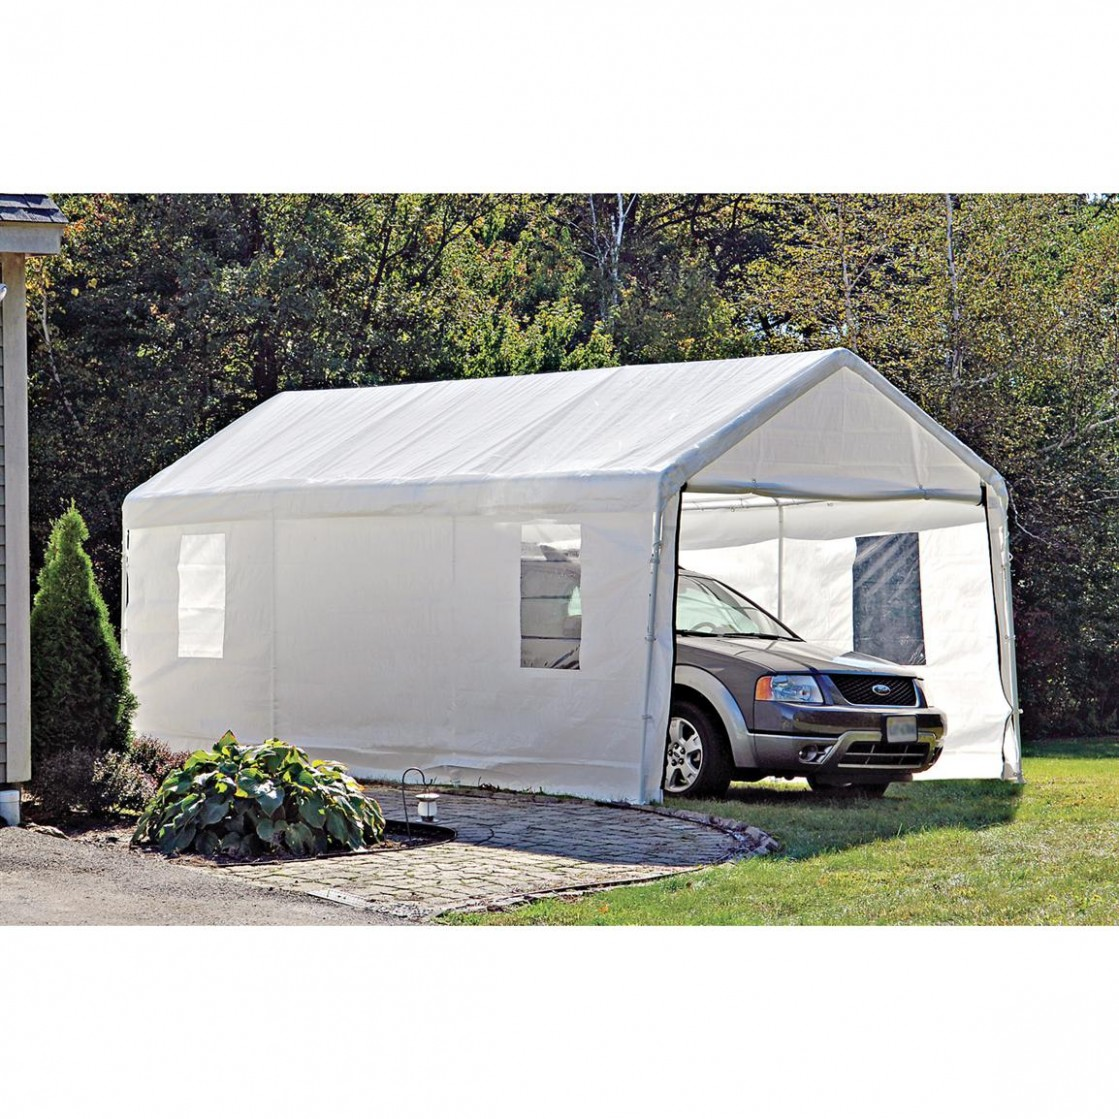 Most Effective Ways To Overcome Movable Carport's Problem | movable carport